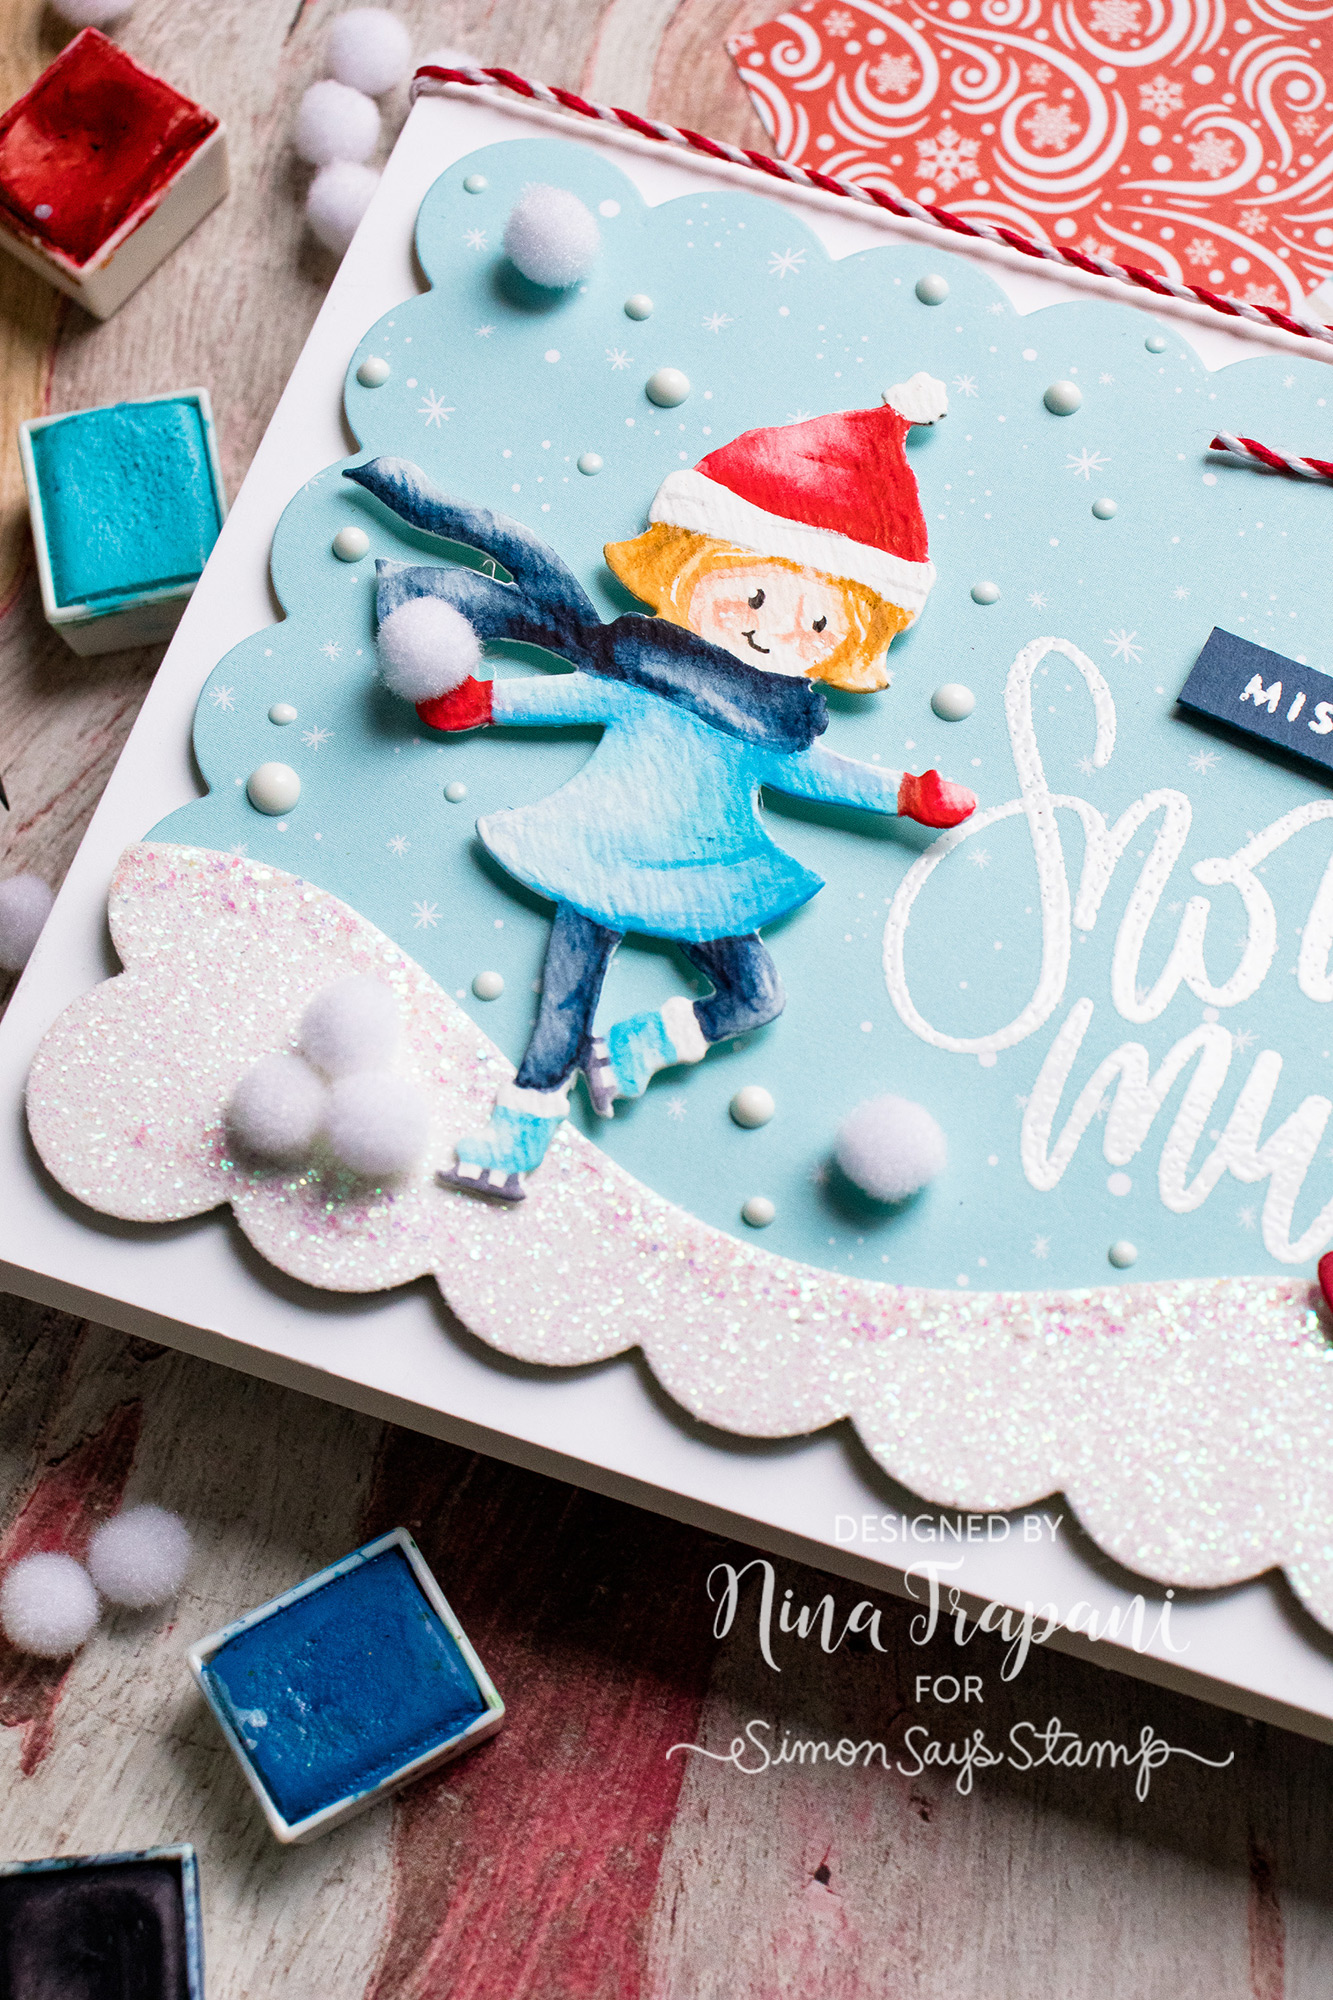 Watercoloring Die Cuts + Simon's January Card Kit Snow Much